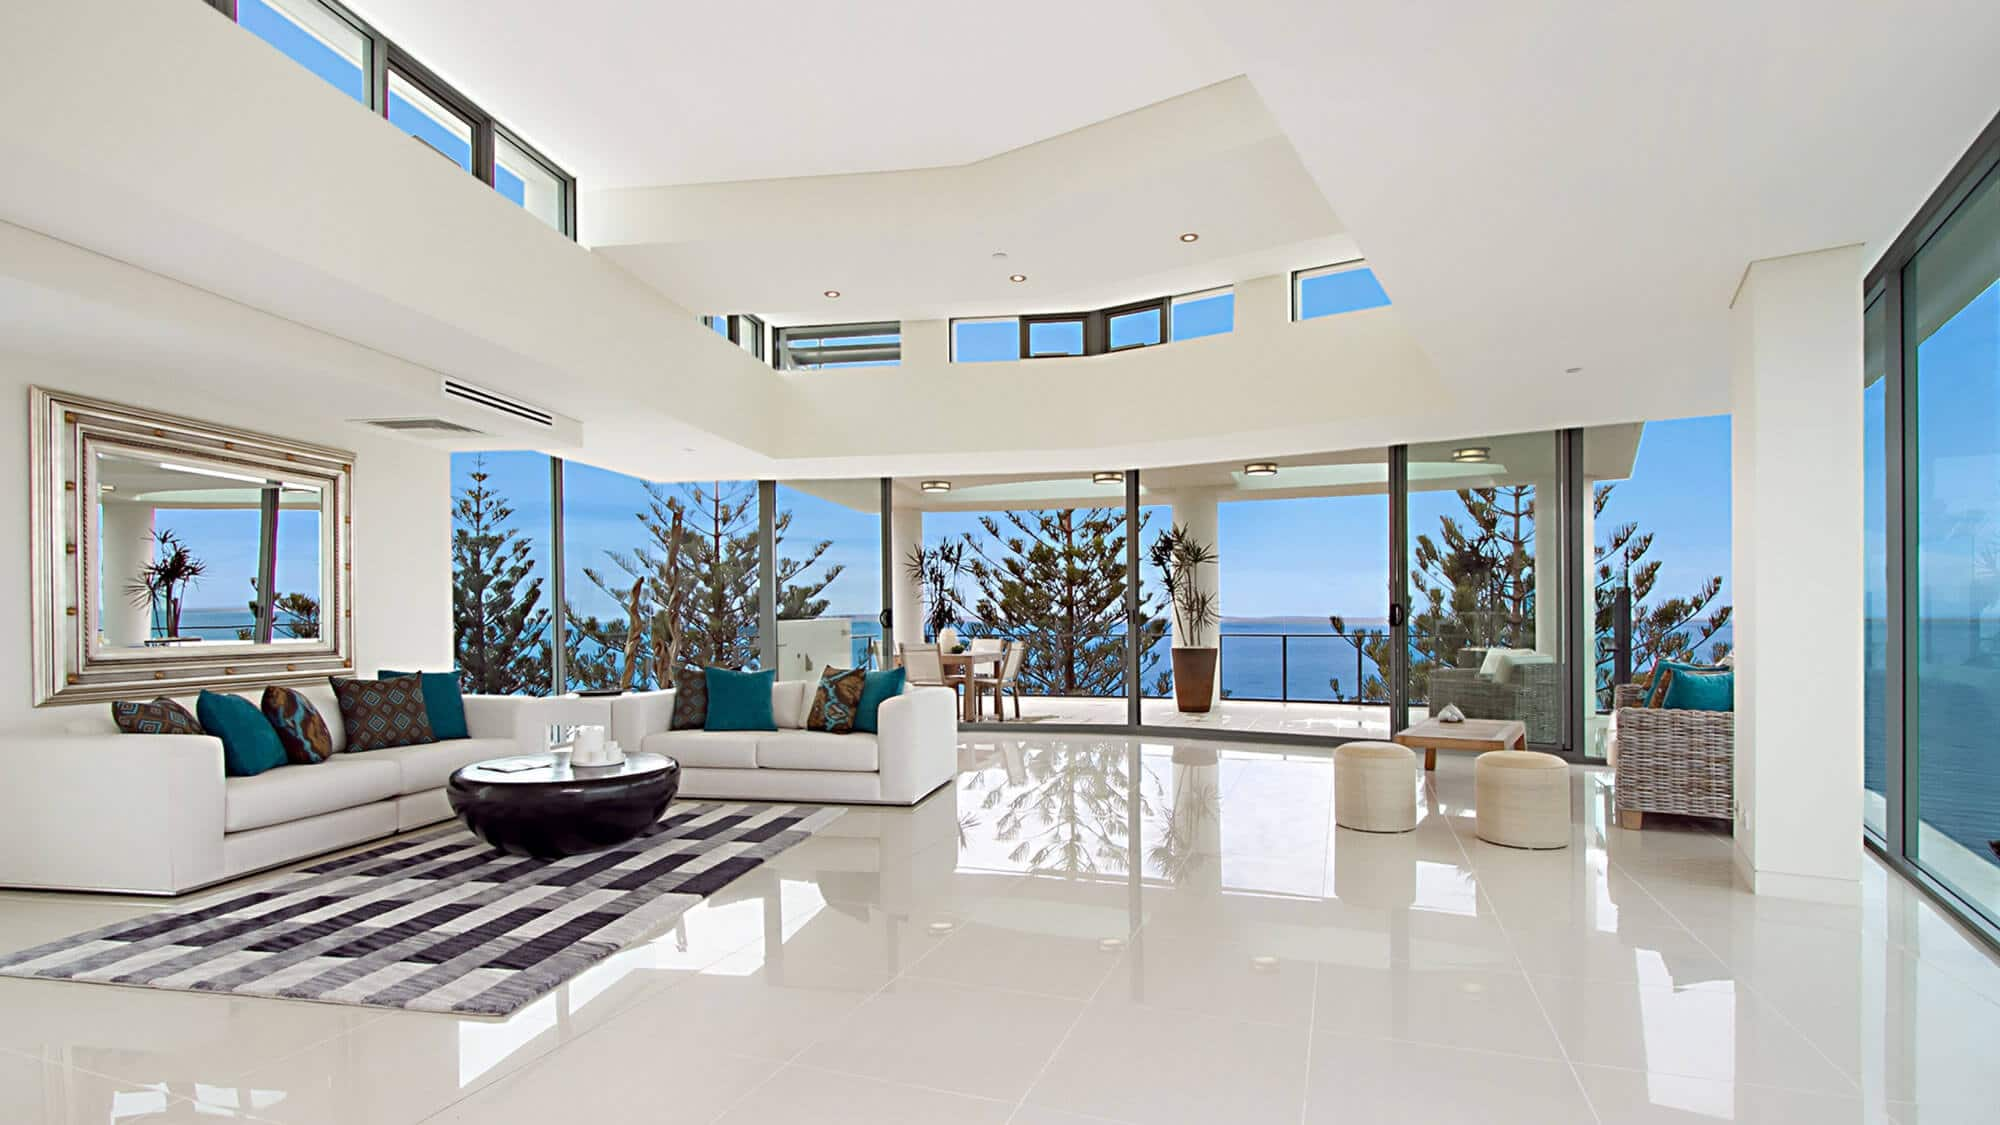 White themed interior house